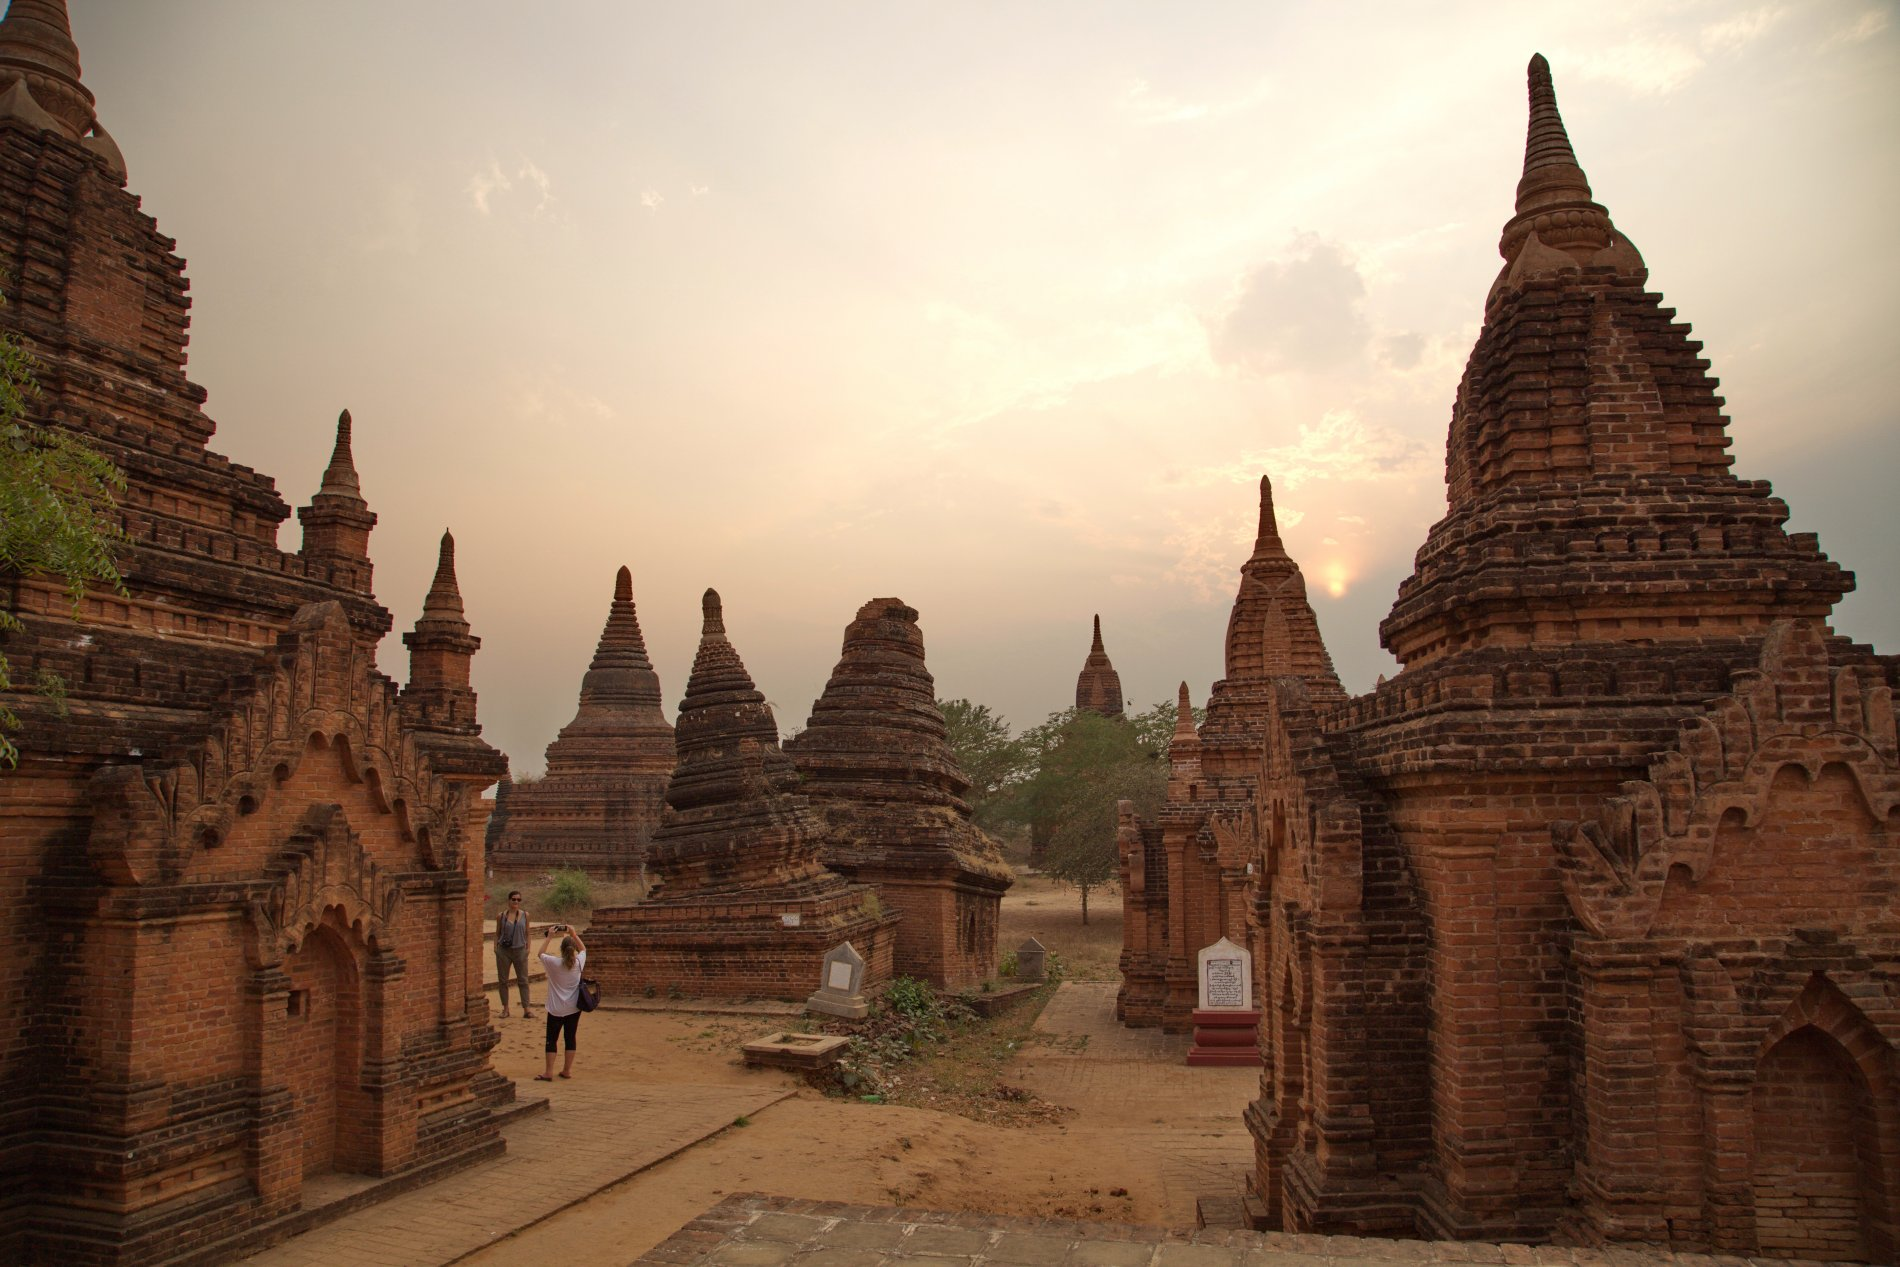 Bagan_182.jpg-commment